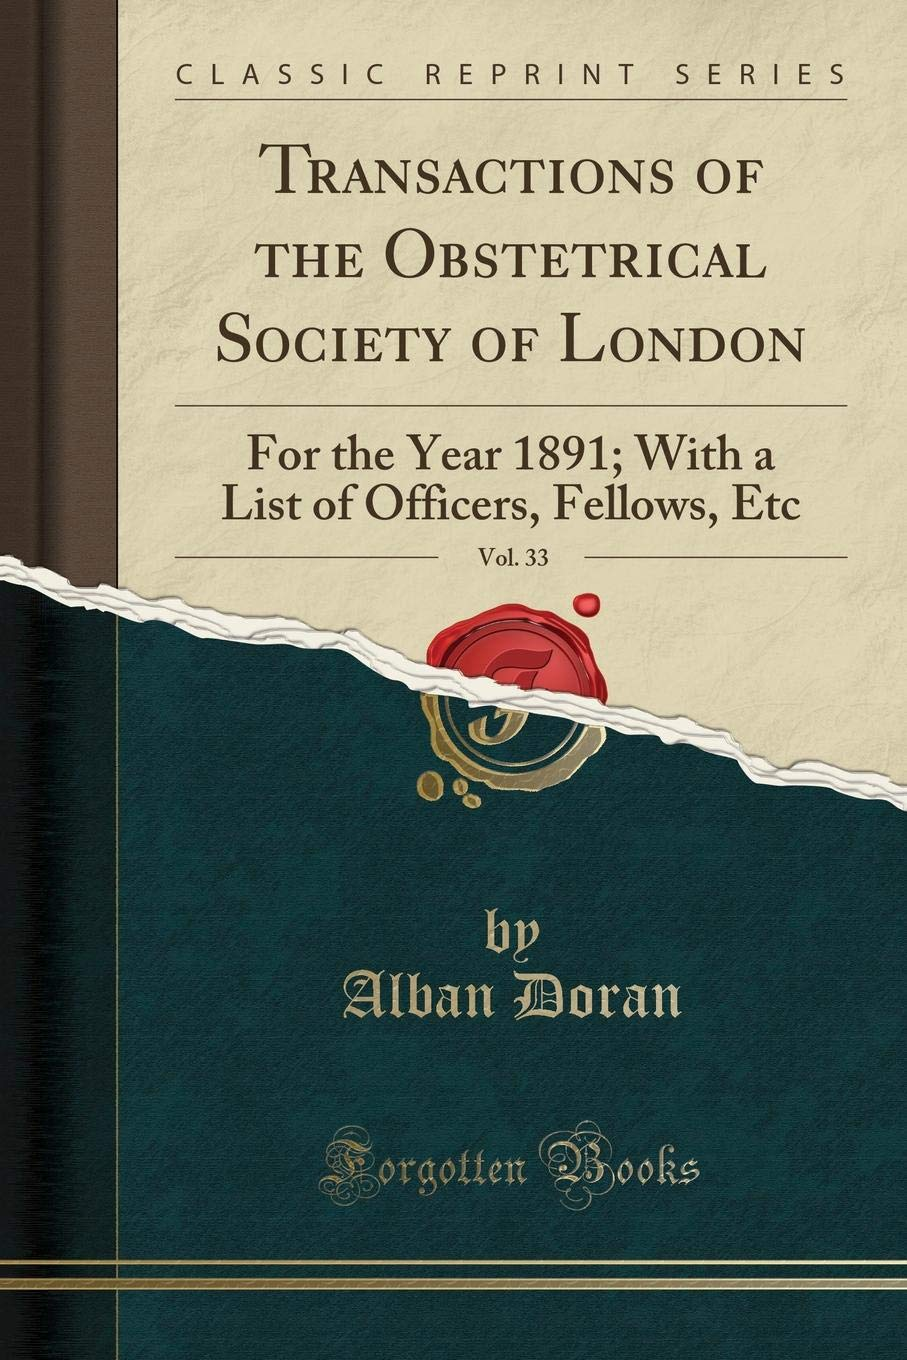 Transactions of the Obstetrical Society of London, Vol. 33: For the Year 1891; With a List of Officers, Fellows, Etc (Classic Reprint) ebook